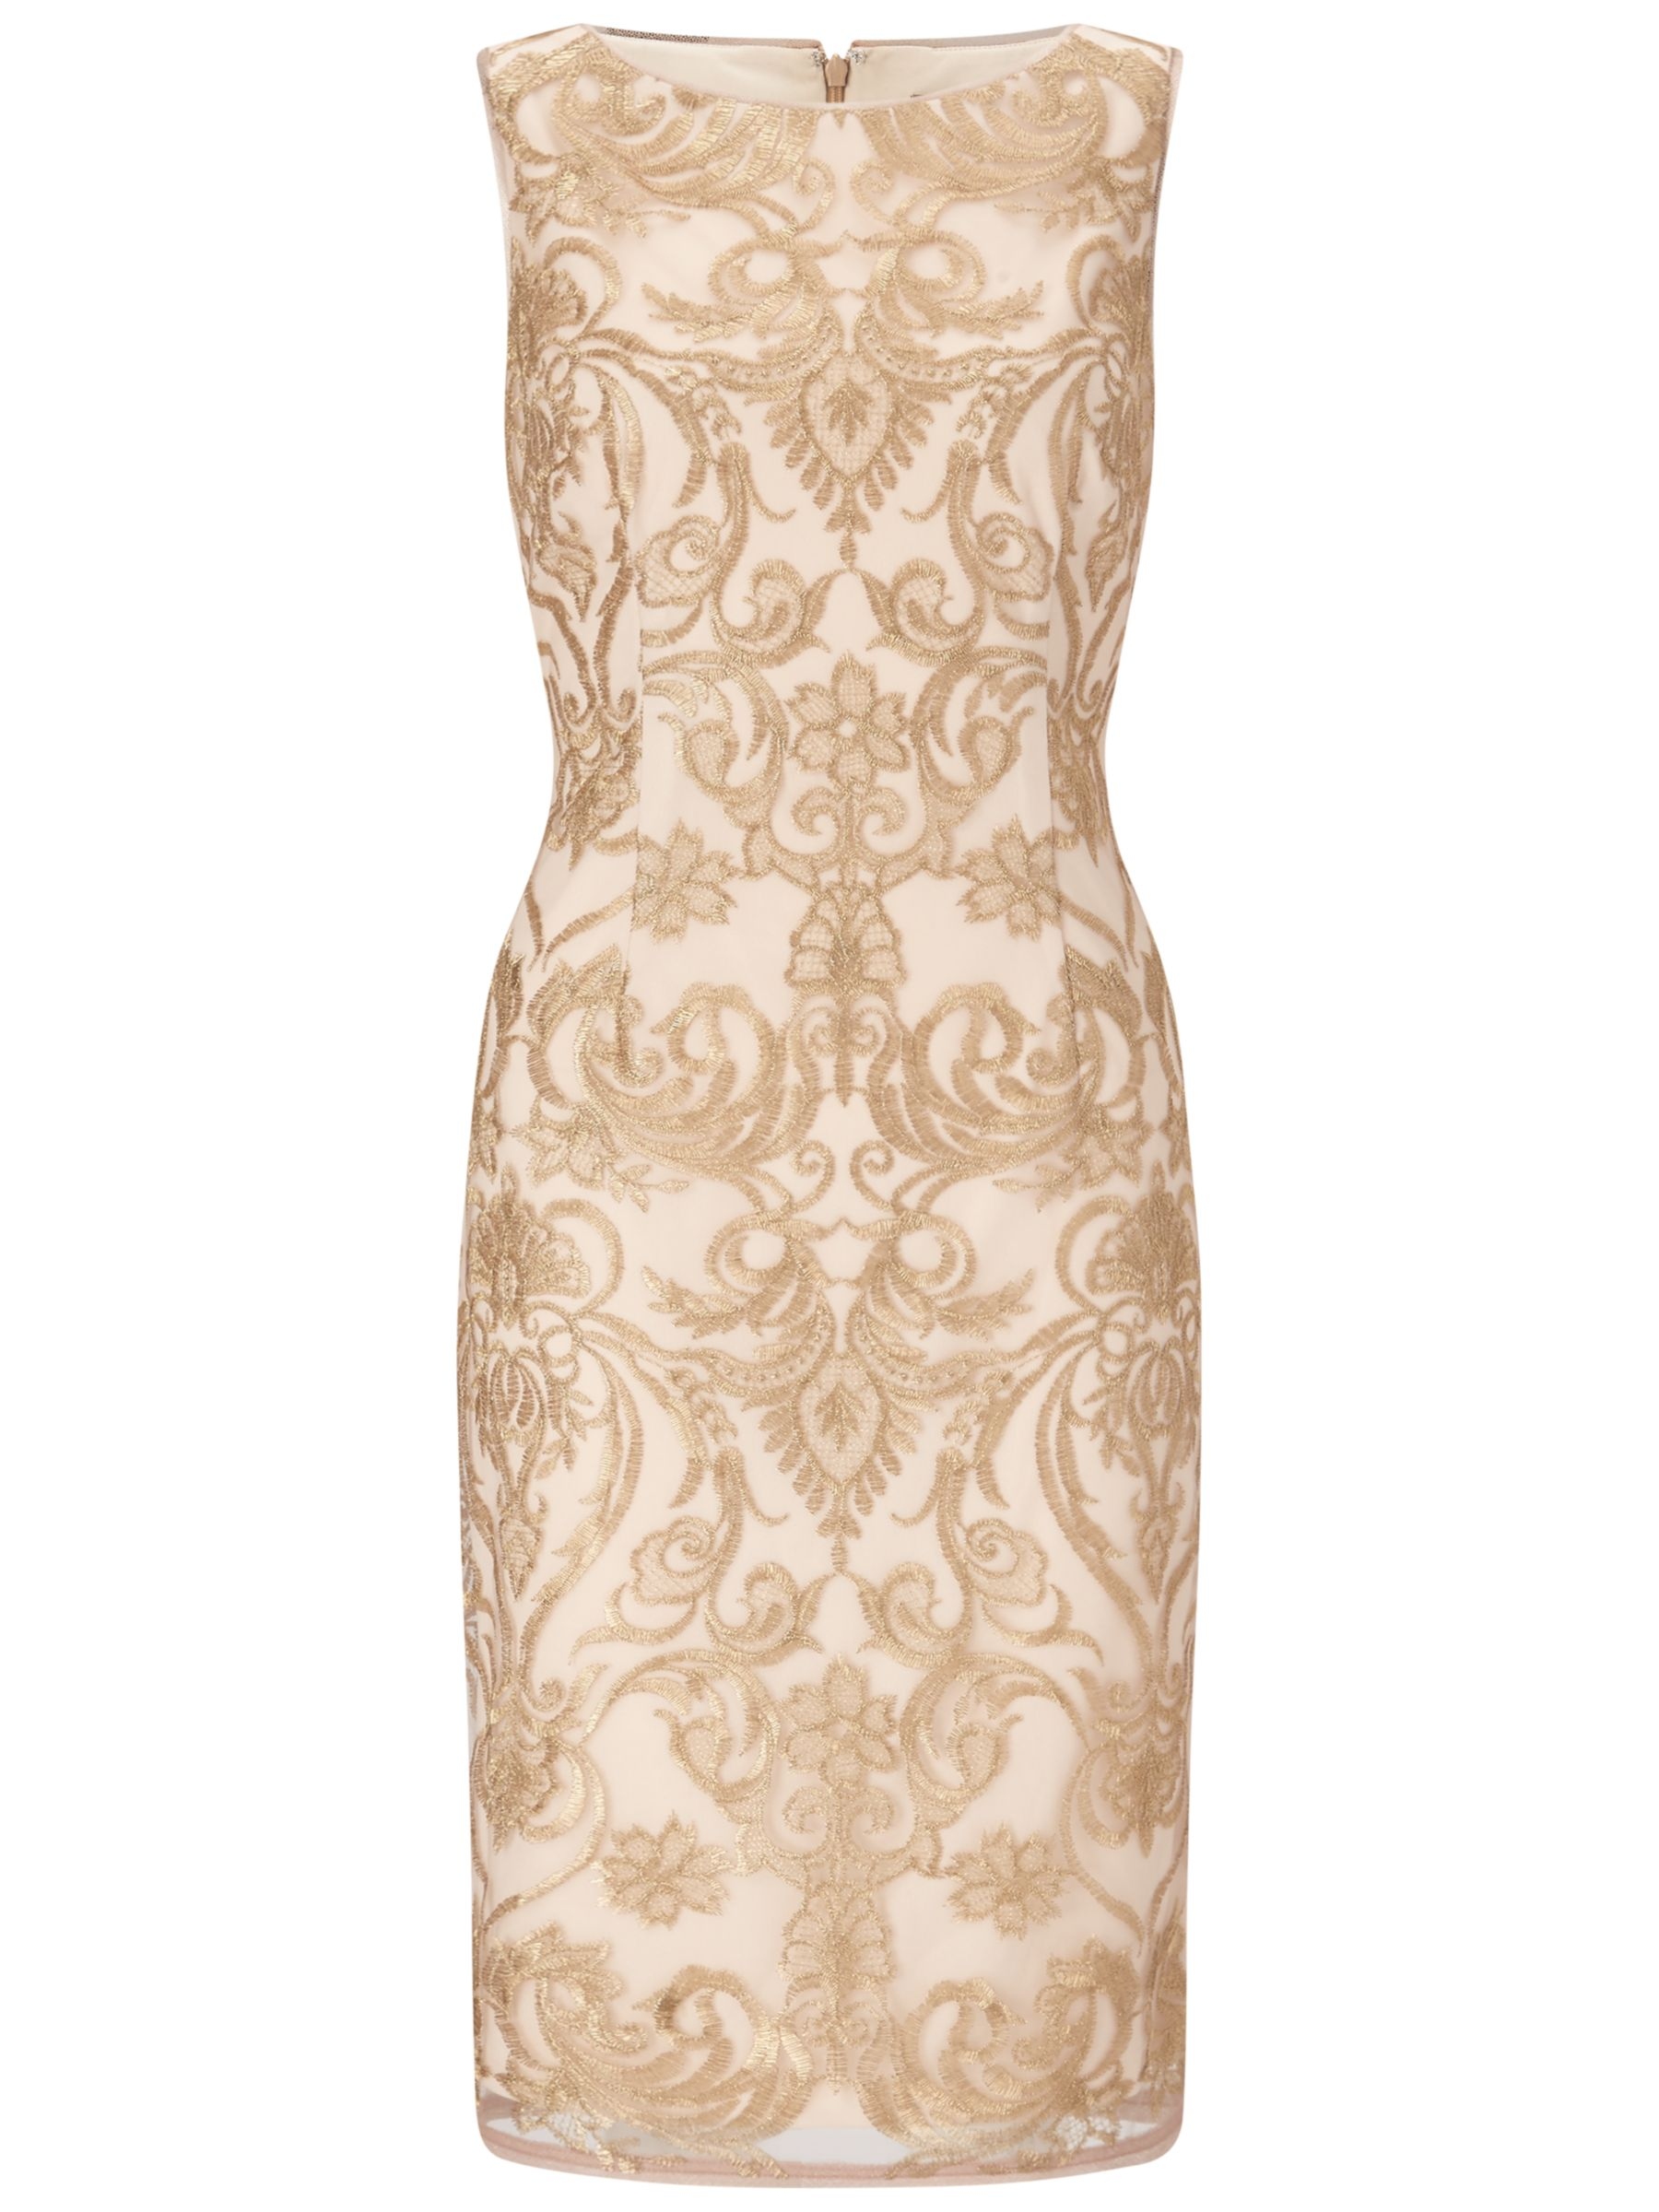 Adrianna Papell Adrianna Papell Sleeveless Embroidered Floral Cocktail Dress, Rose Gold/Nude